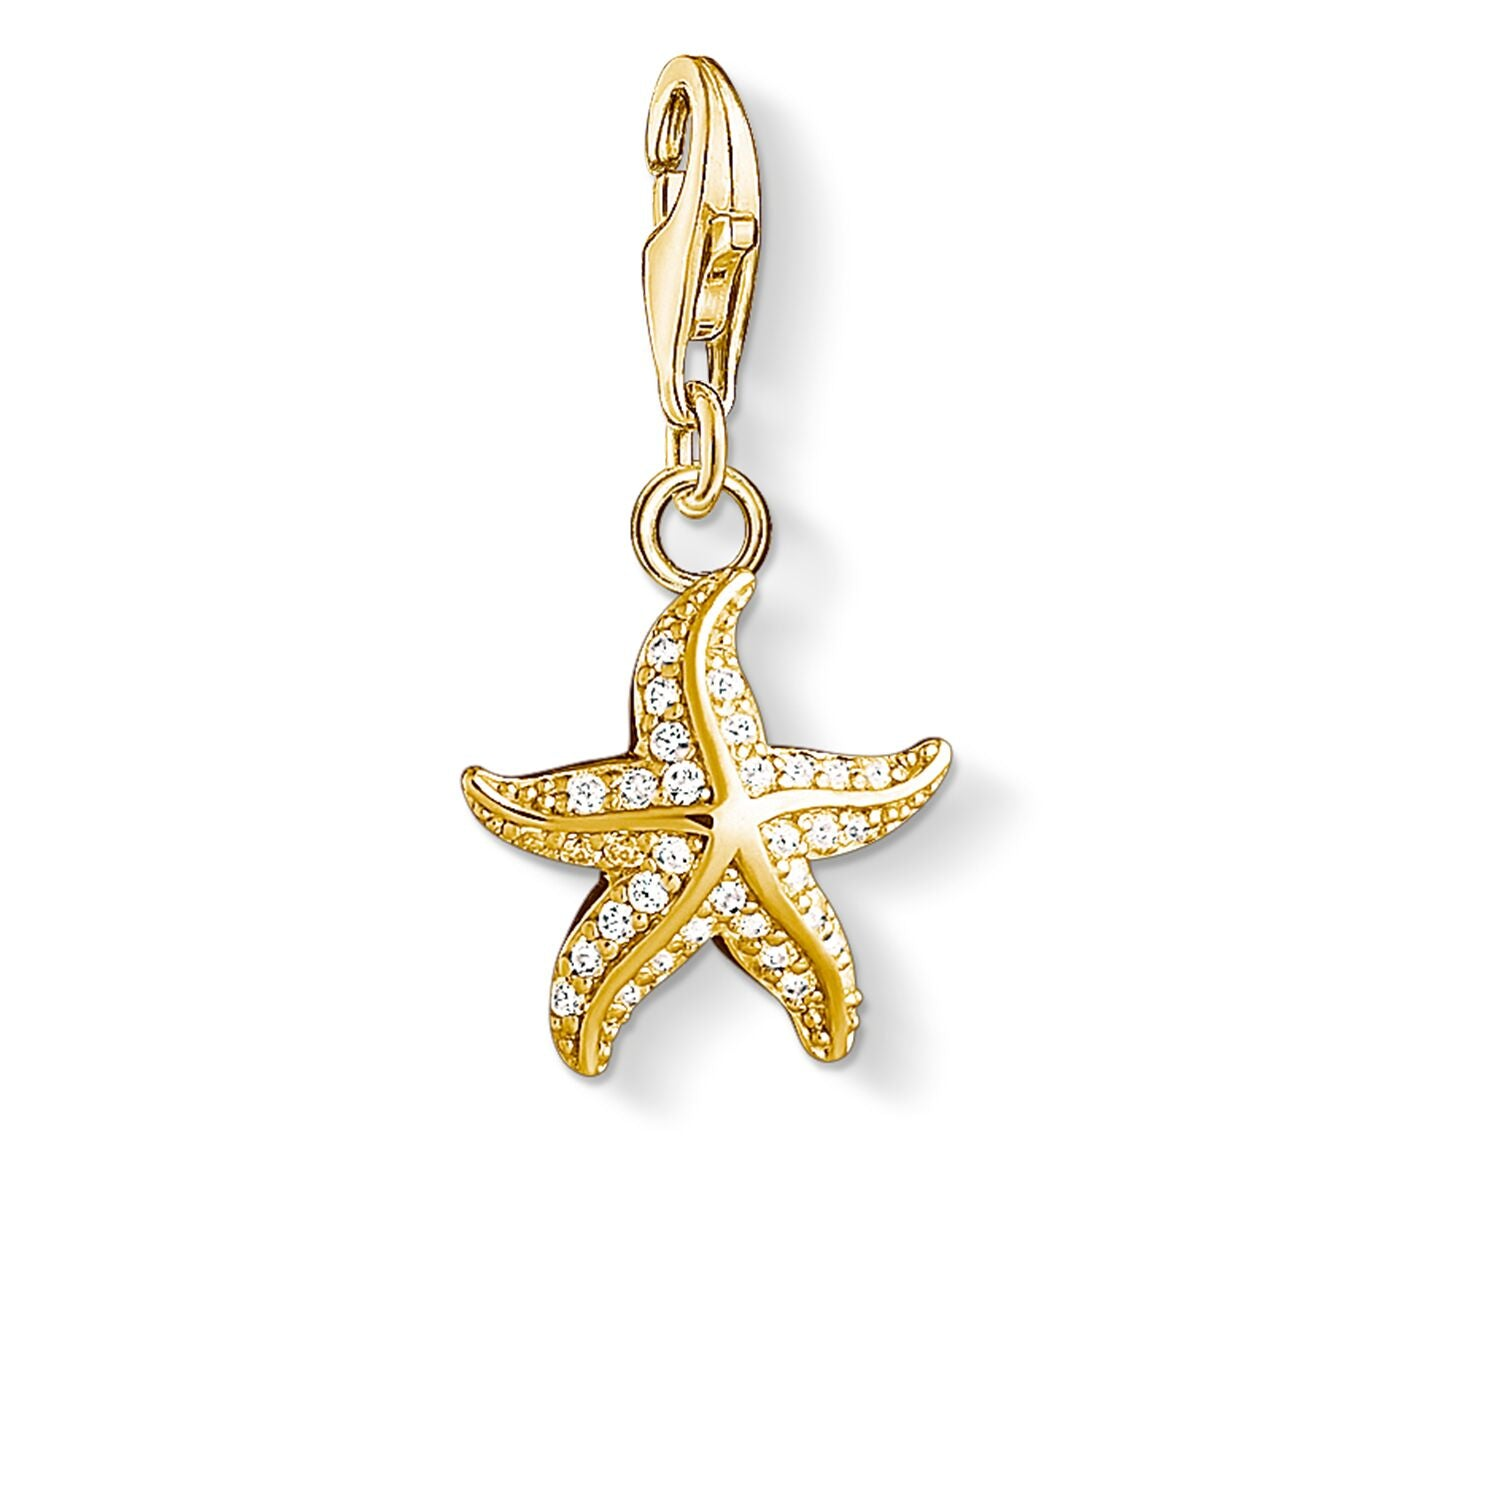 STERLING SILVER YELLOW GOLD PLATED C/CLUB STARFISH CZ CHARM